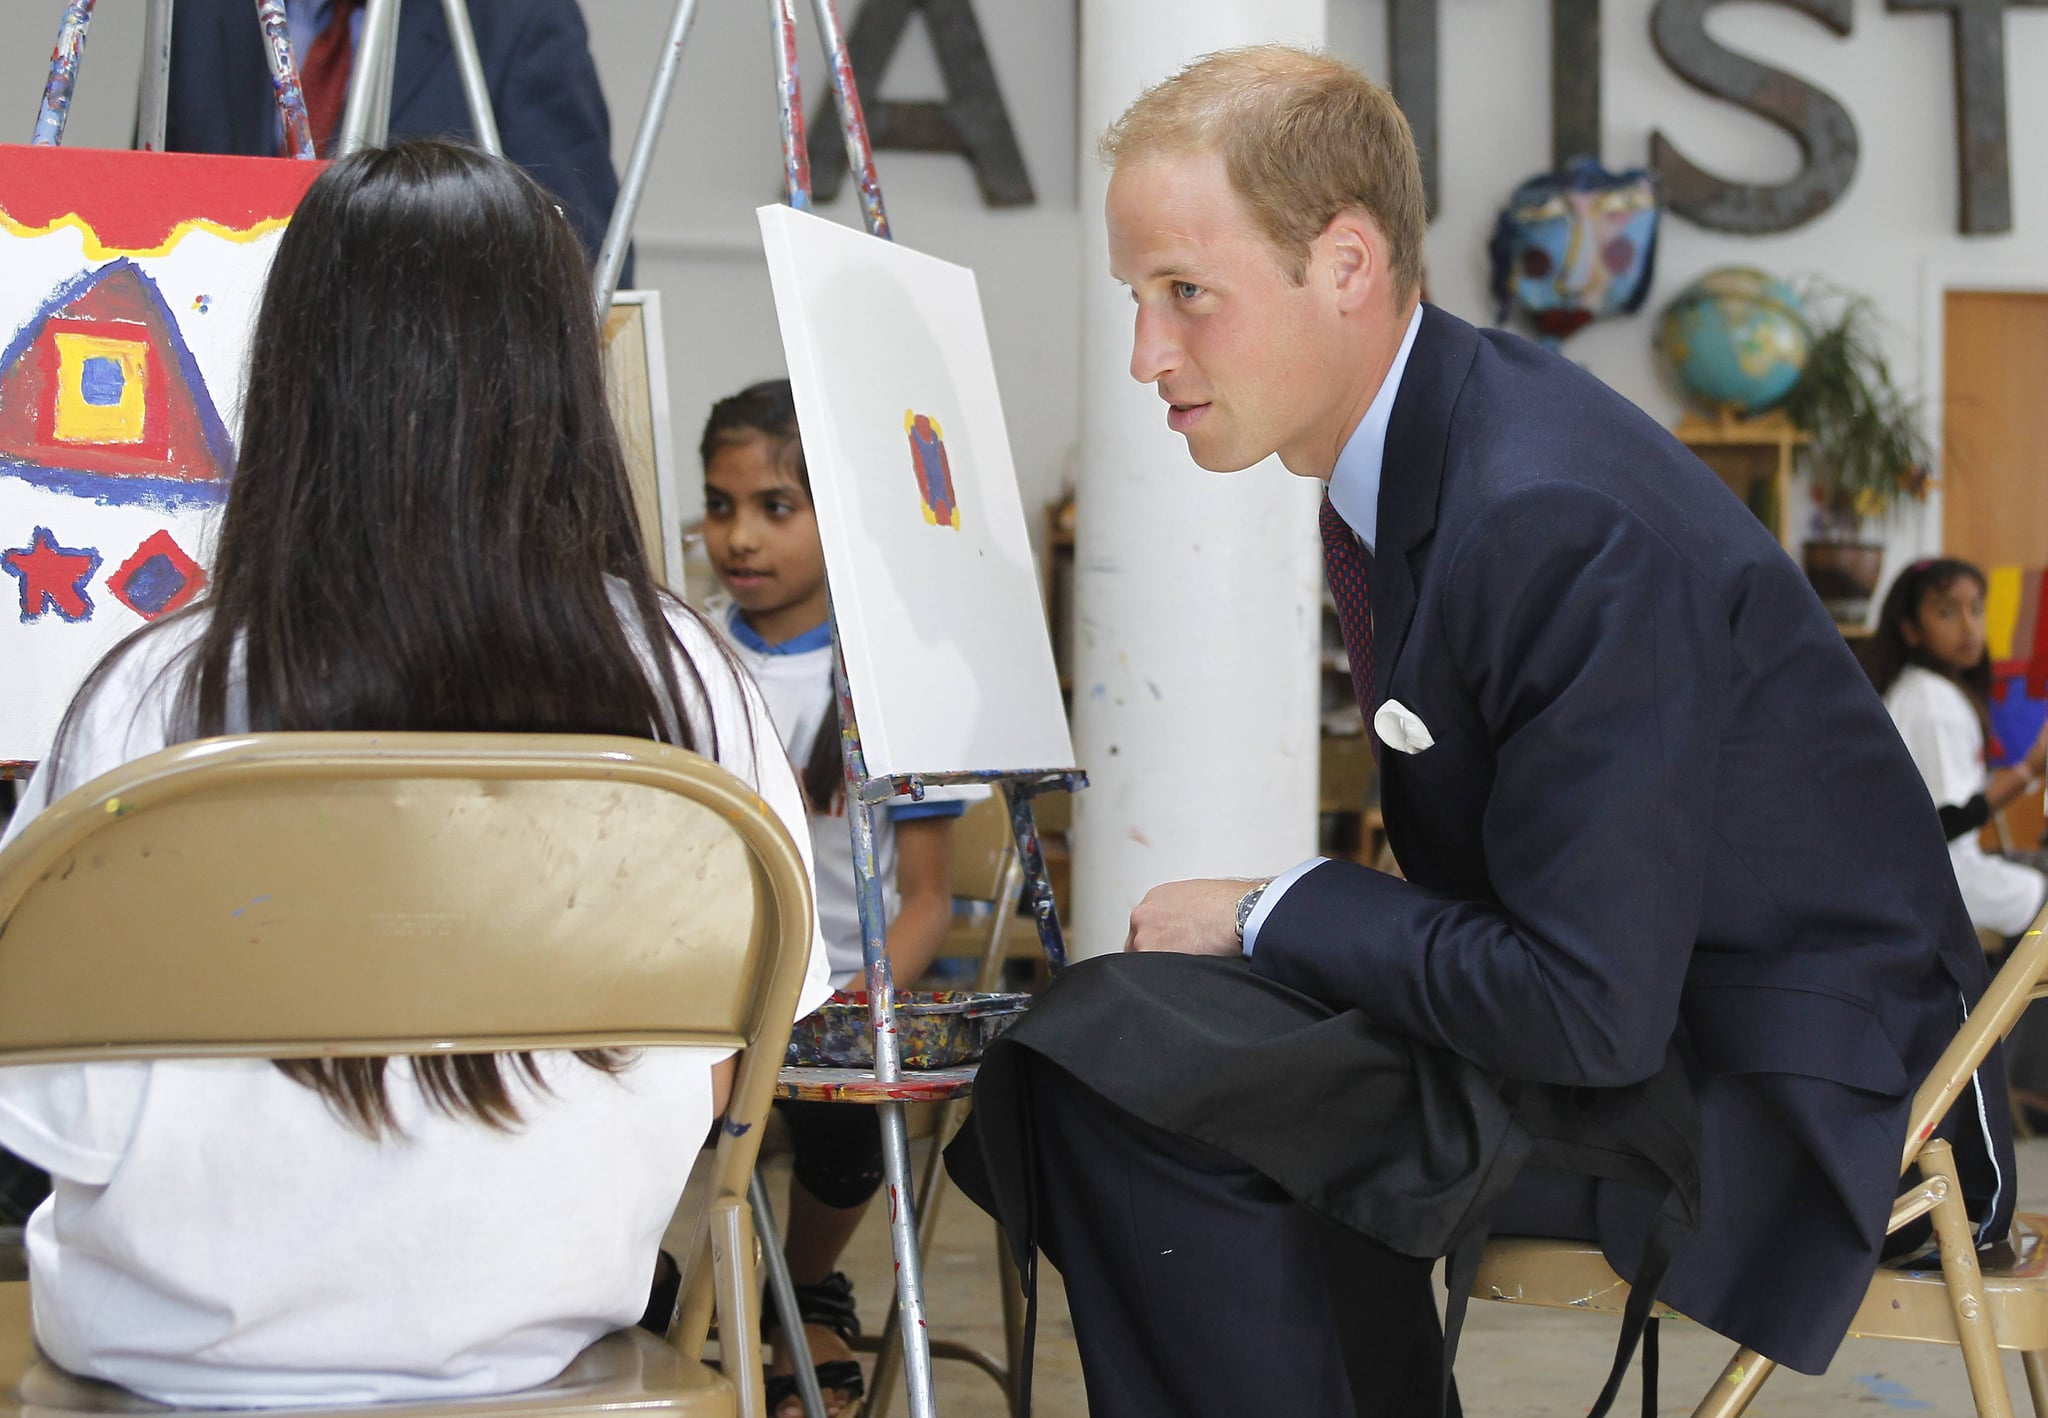 Prince William with kids at Inner City Arts in LA.